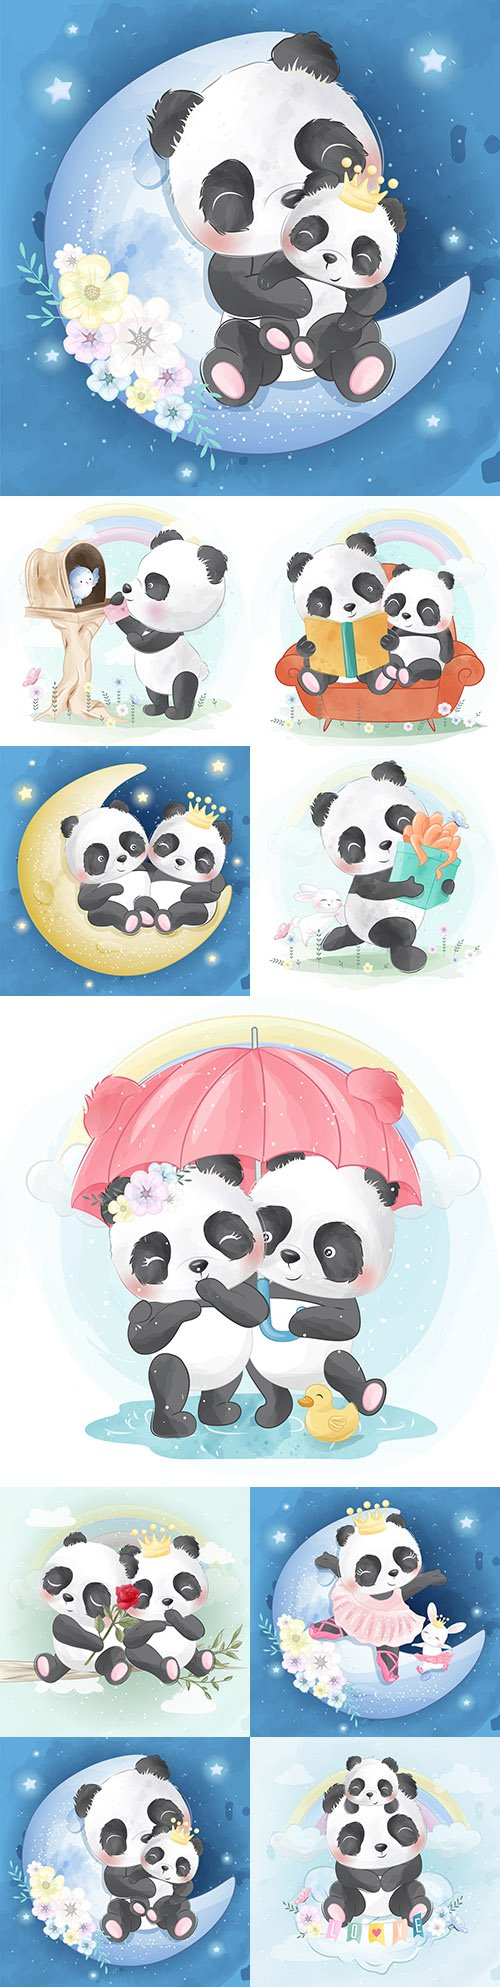 Cute panda with mom funny drawn illustrations